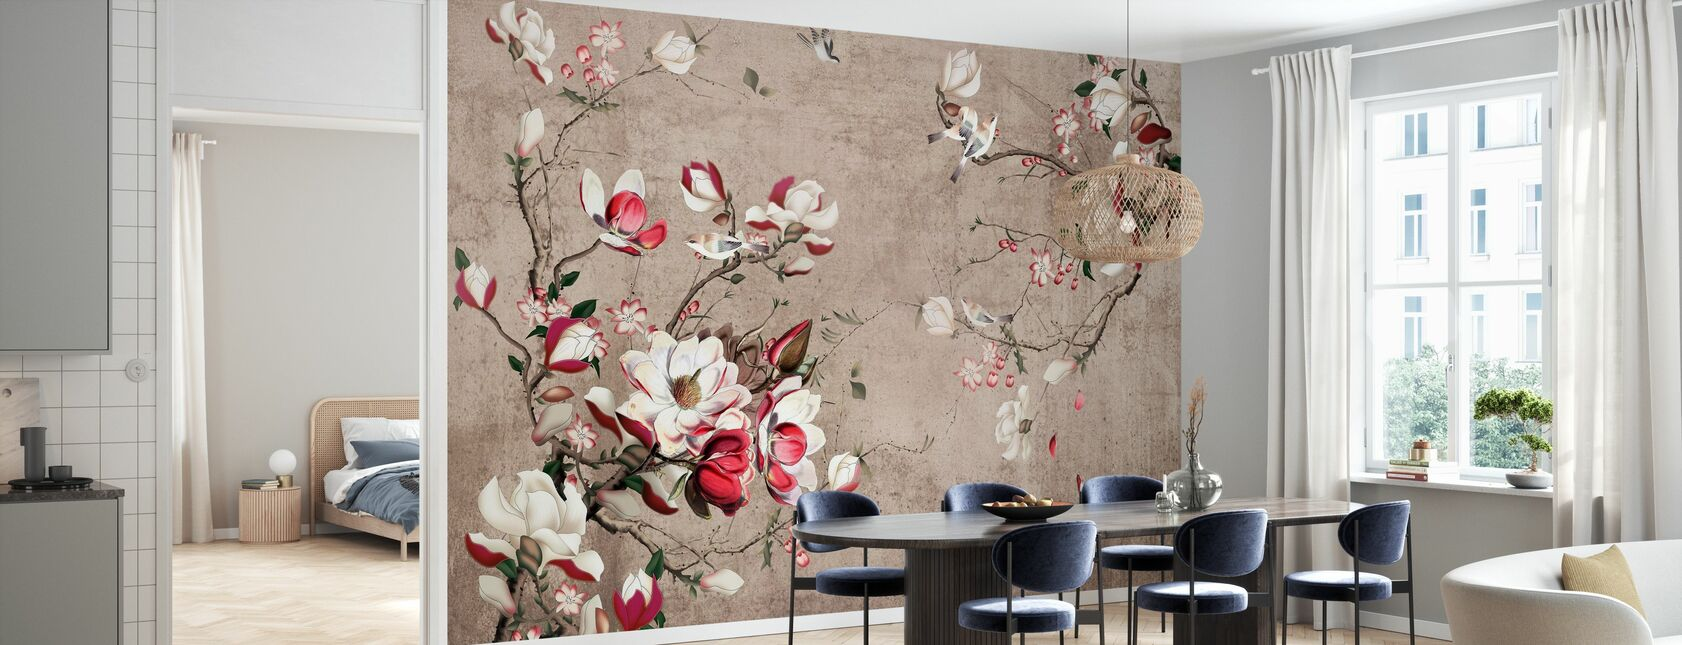 Flourish Botanical - Wallpaper - Kitchen